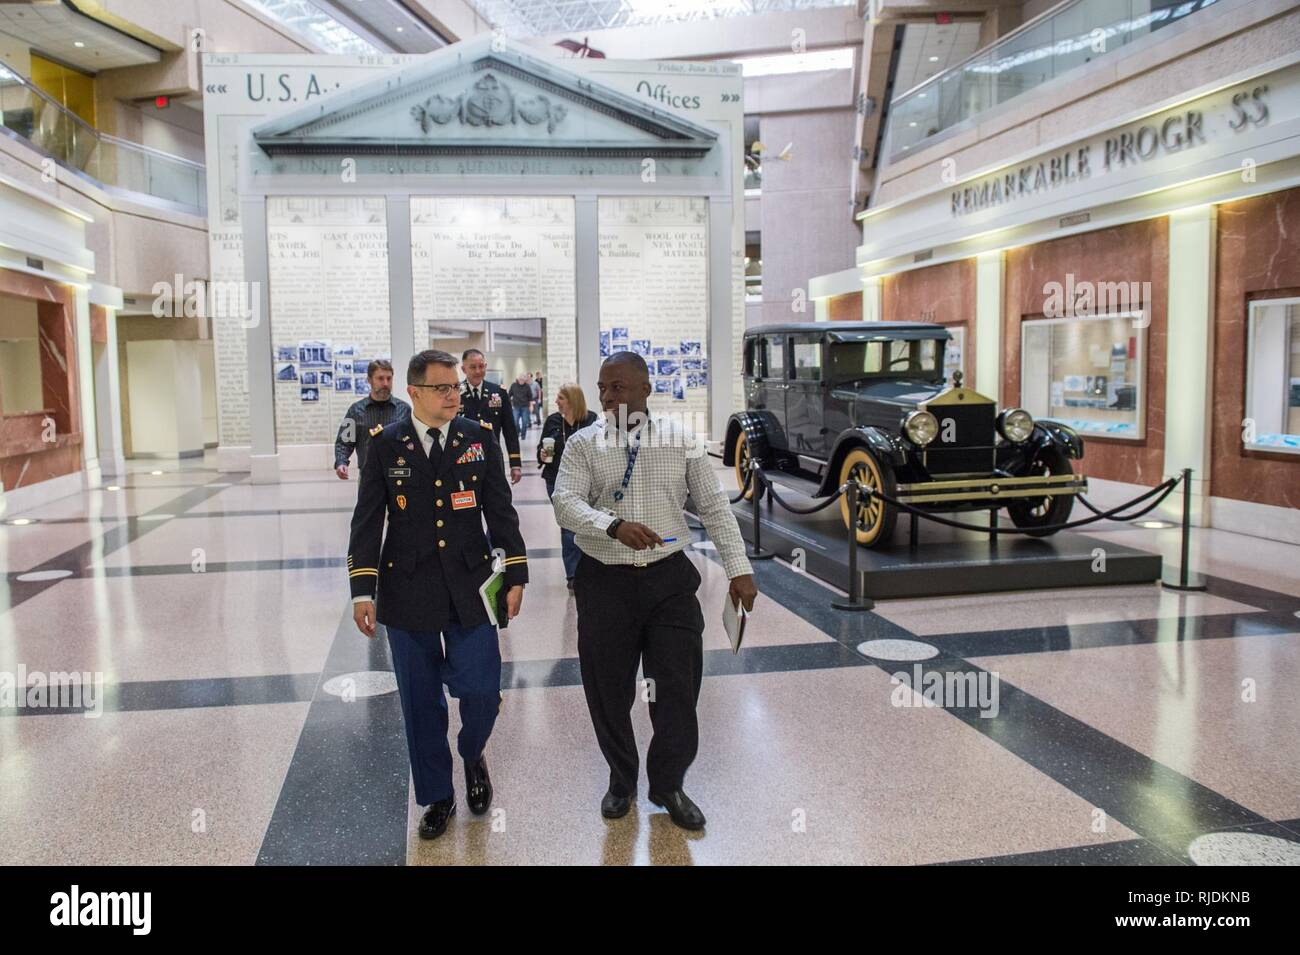 Maj. Harold Huff, training with industry USAA fellow (right) escorts Lt. Col. Chris Hyde through USAA's home campus corridors in San Antonio, Texas during a visit on January 18th. The goal of this fellowship was to allow a couple Soldiers to experience corporate America communication techniques and learn the relationship of their industry as it relates to the functions of Army Public Affairs. - Stock Image